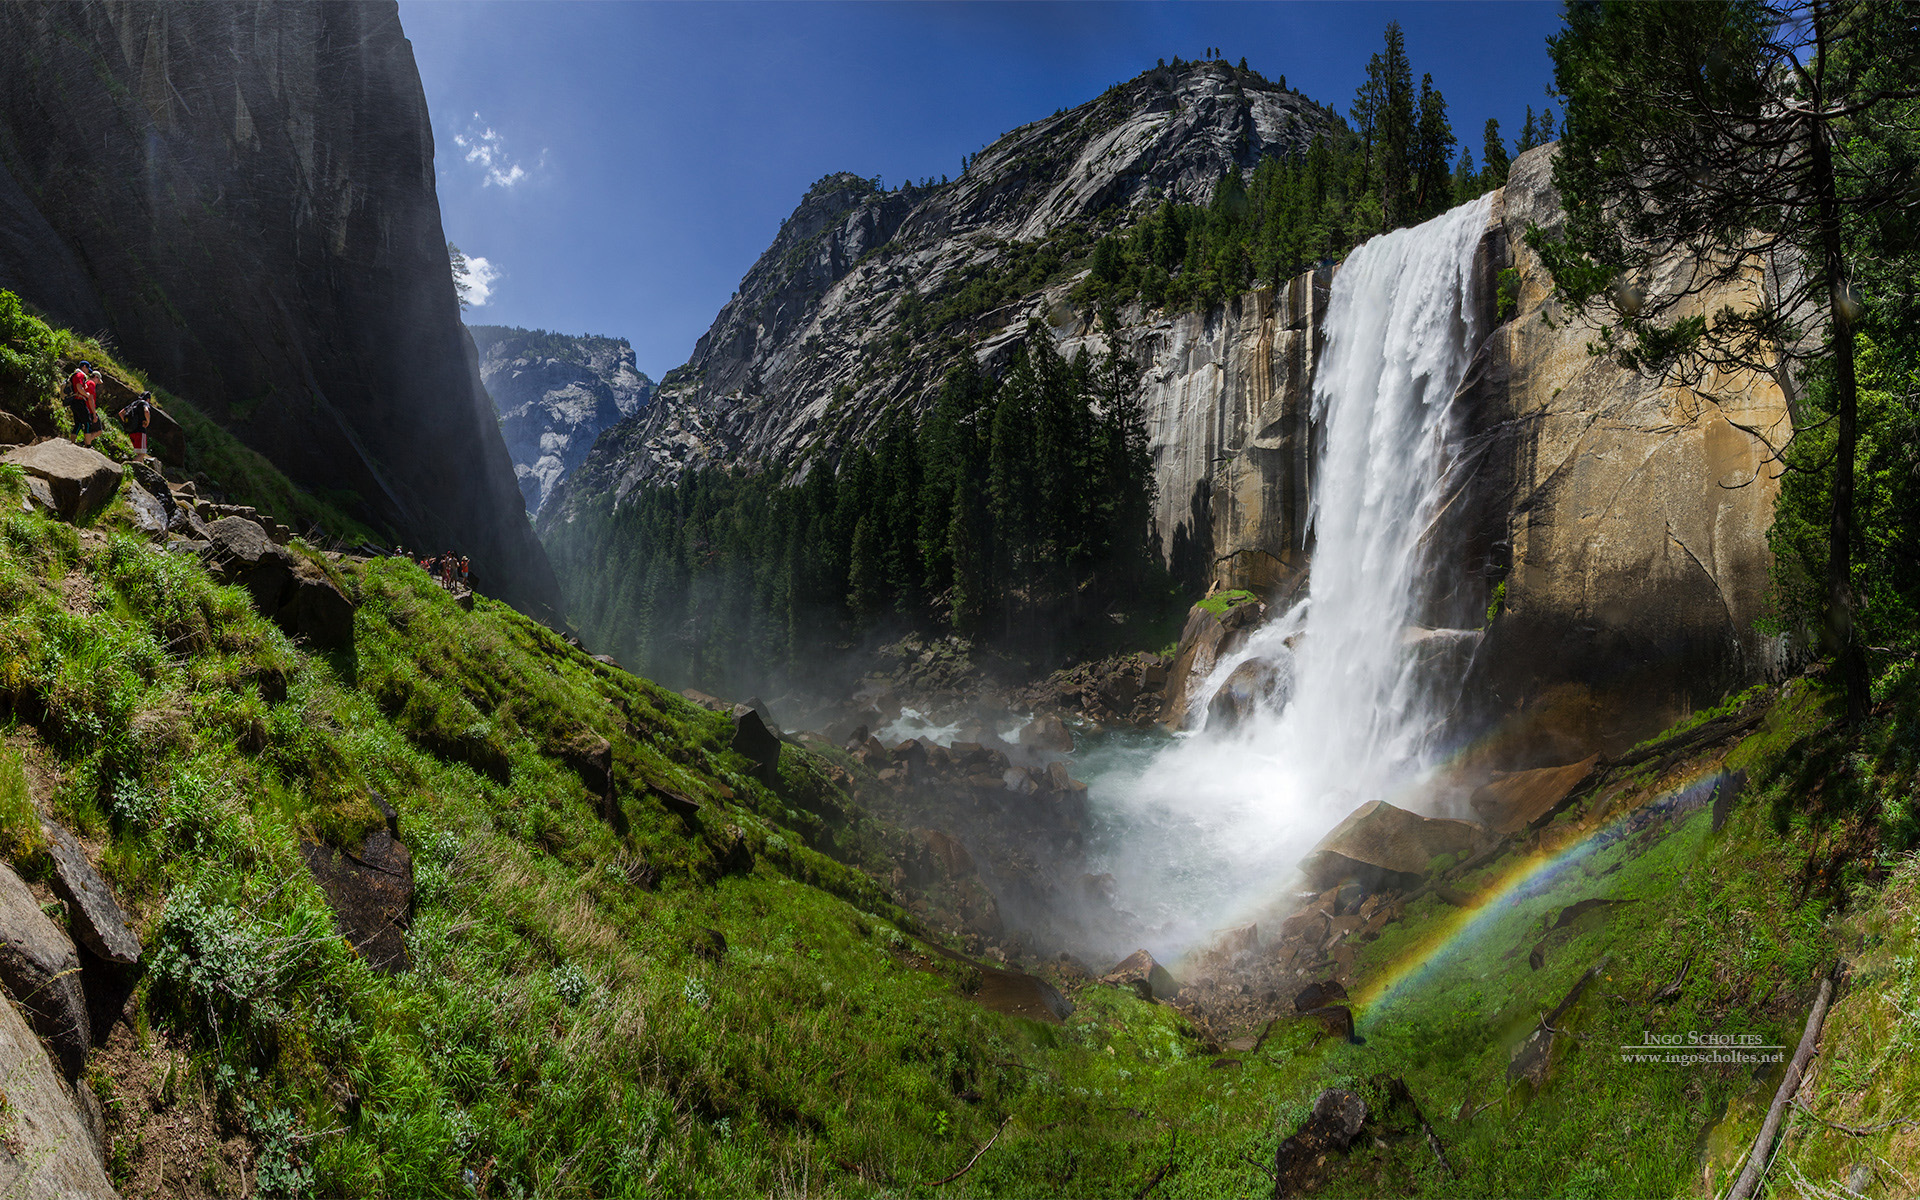 Vernal Fall Yosemite National Park Wallpapers HD Wallpapers 1920x1200